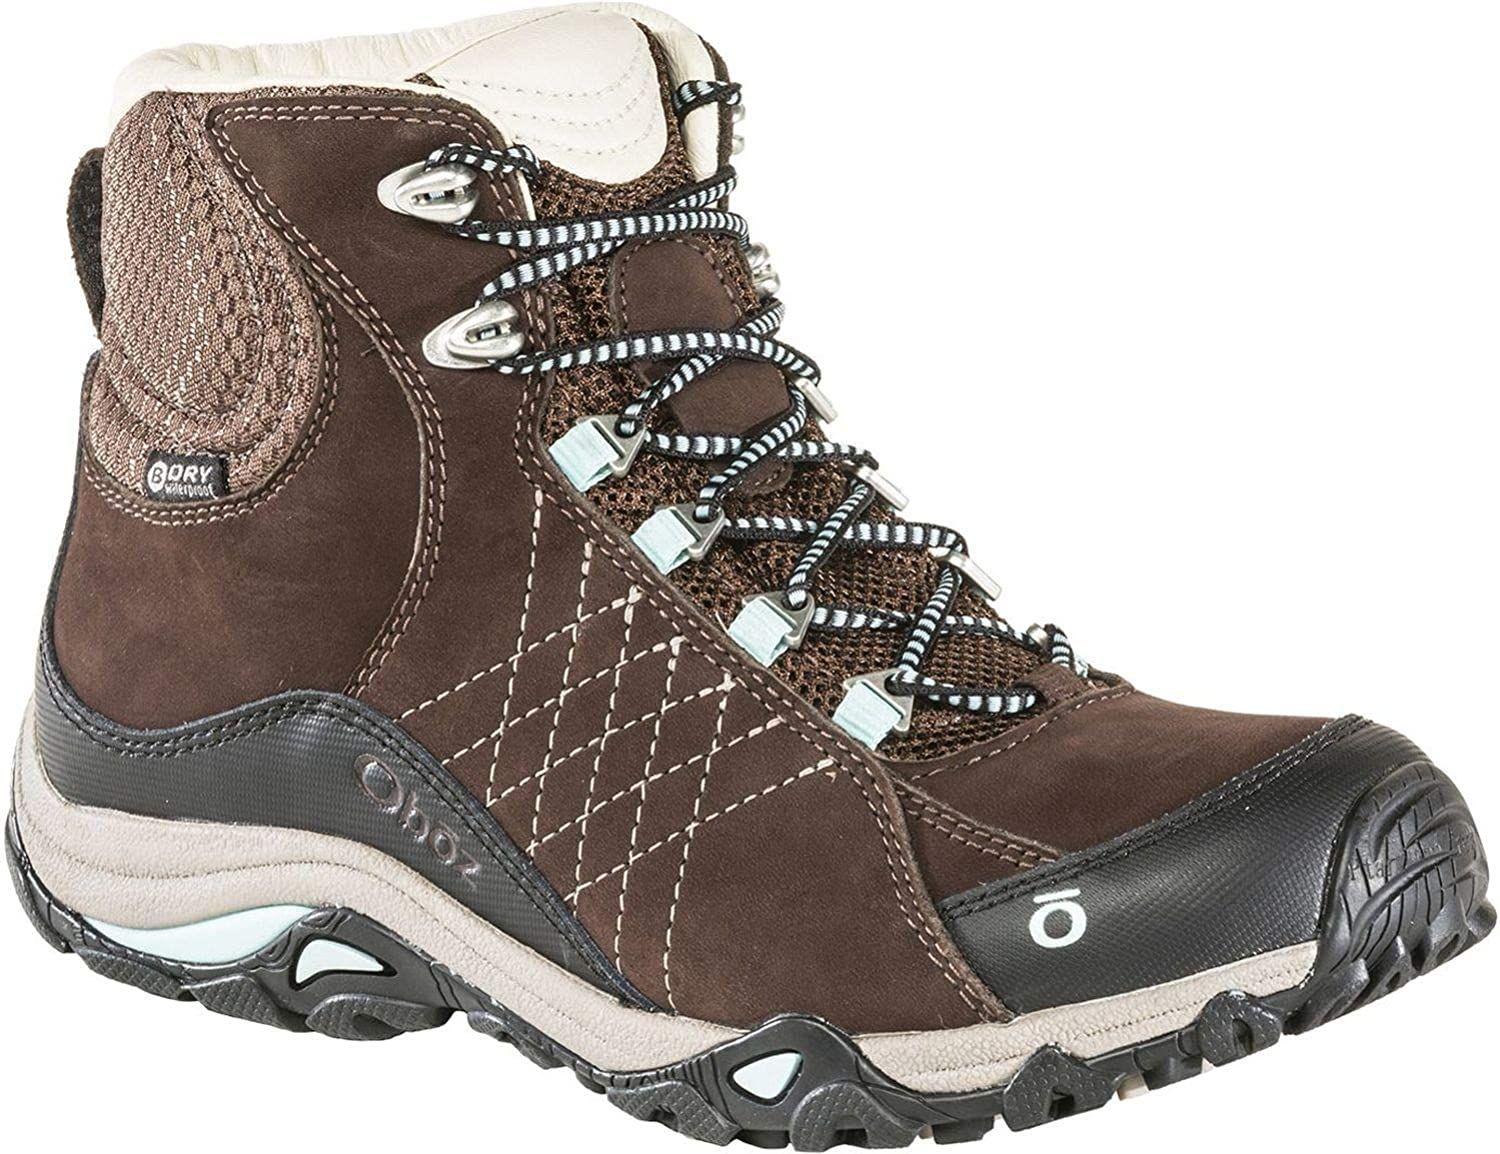 Oboz Women s Sapphire Mid B-Dry Waterproof Hiking Boot